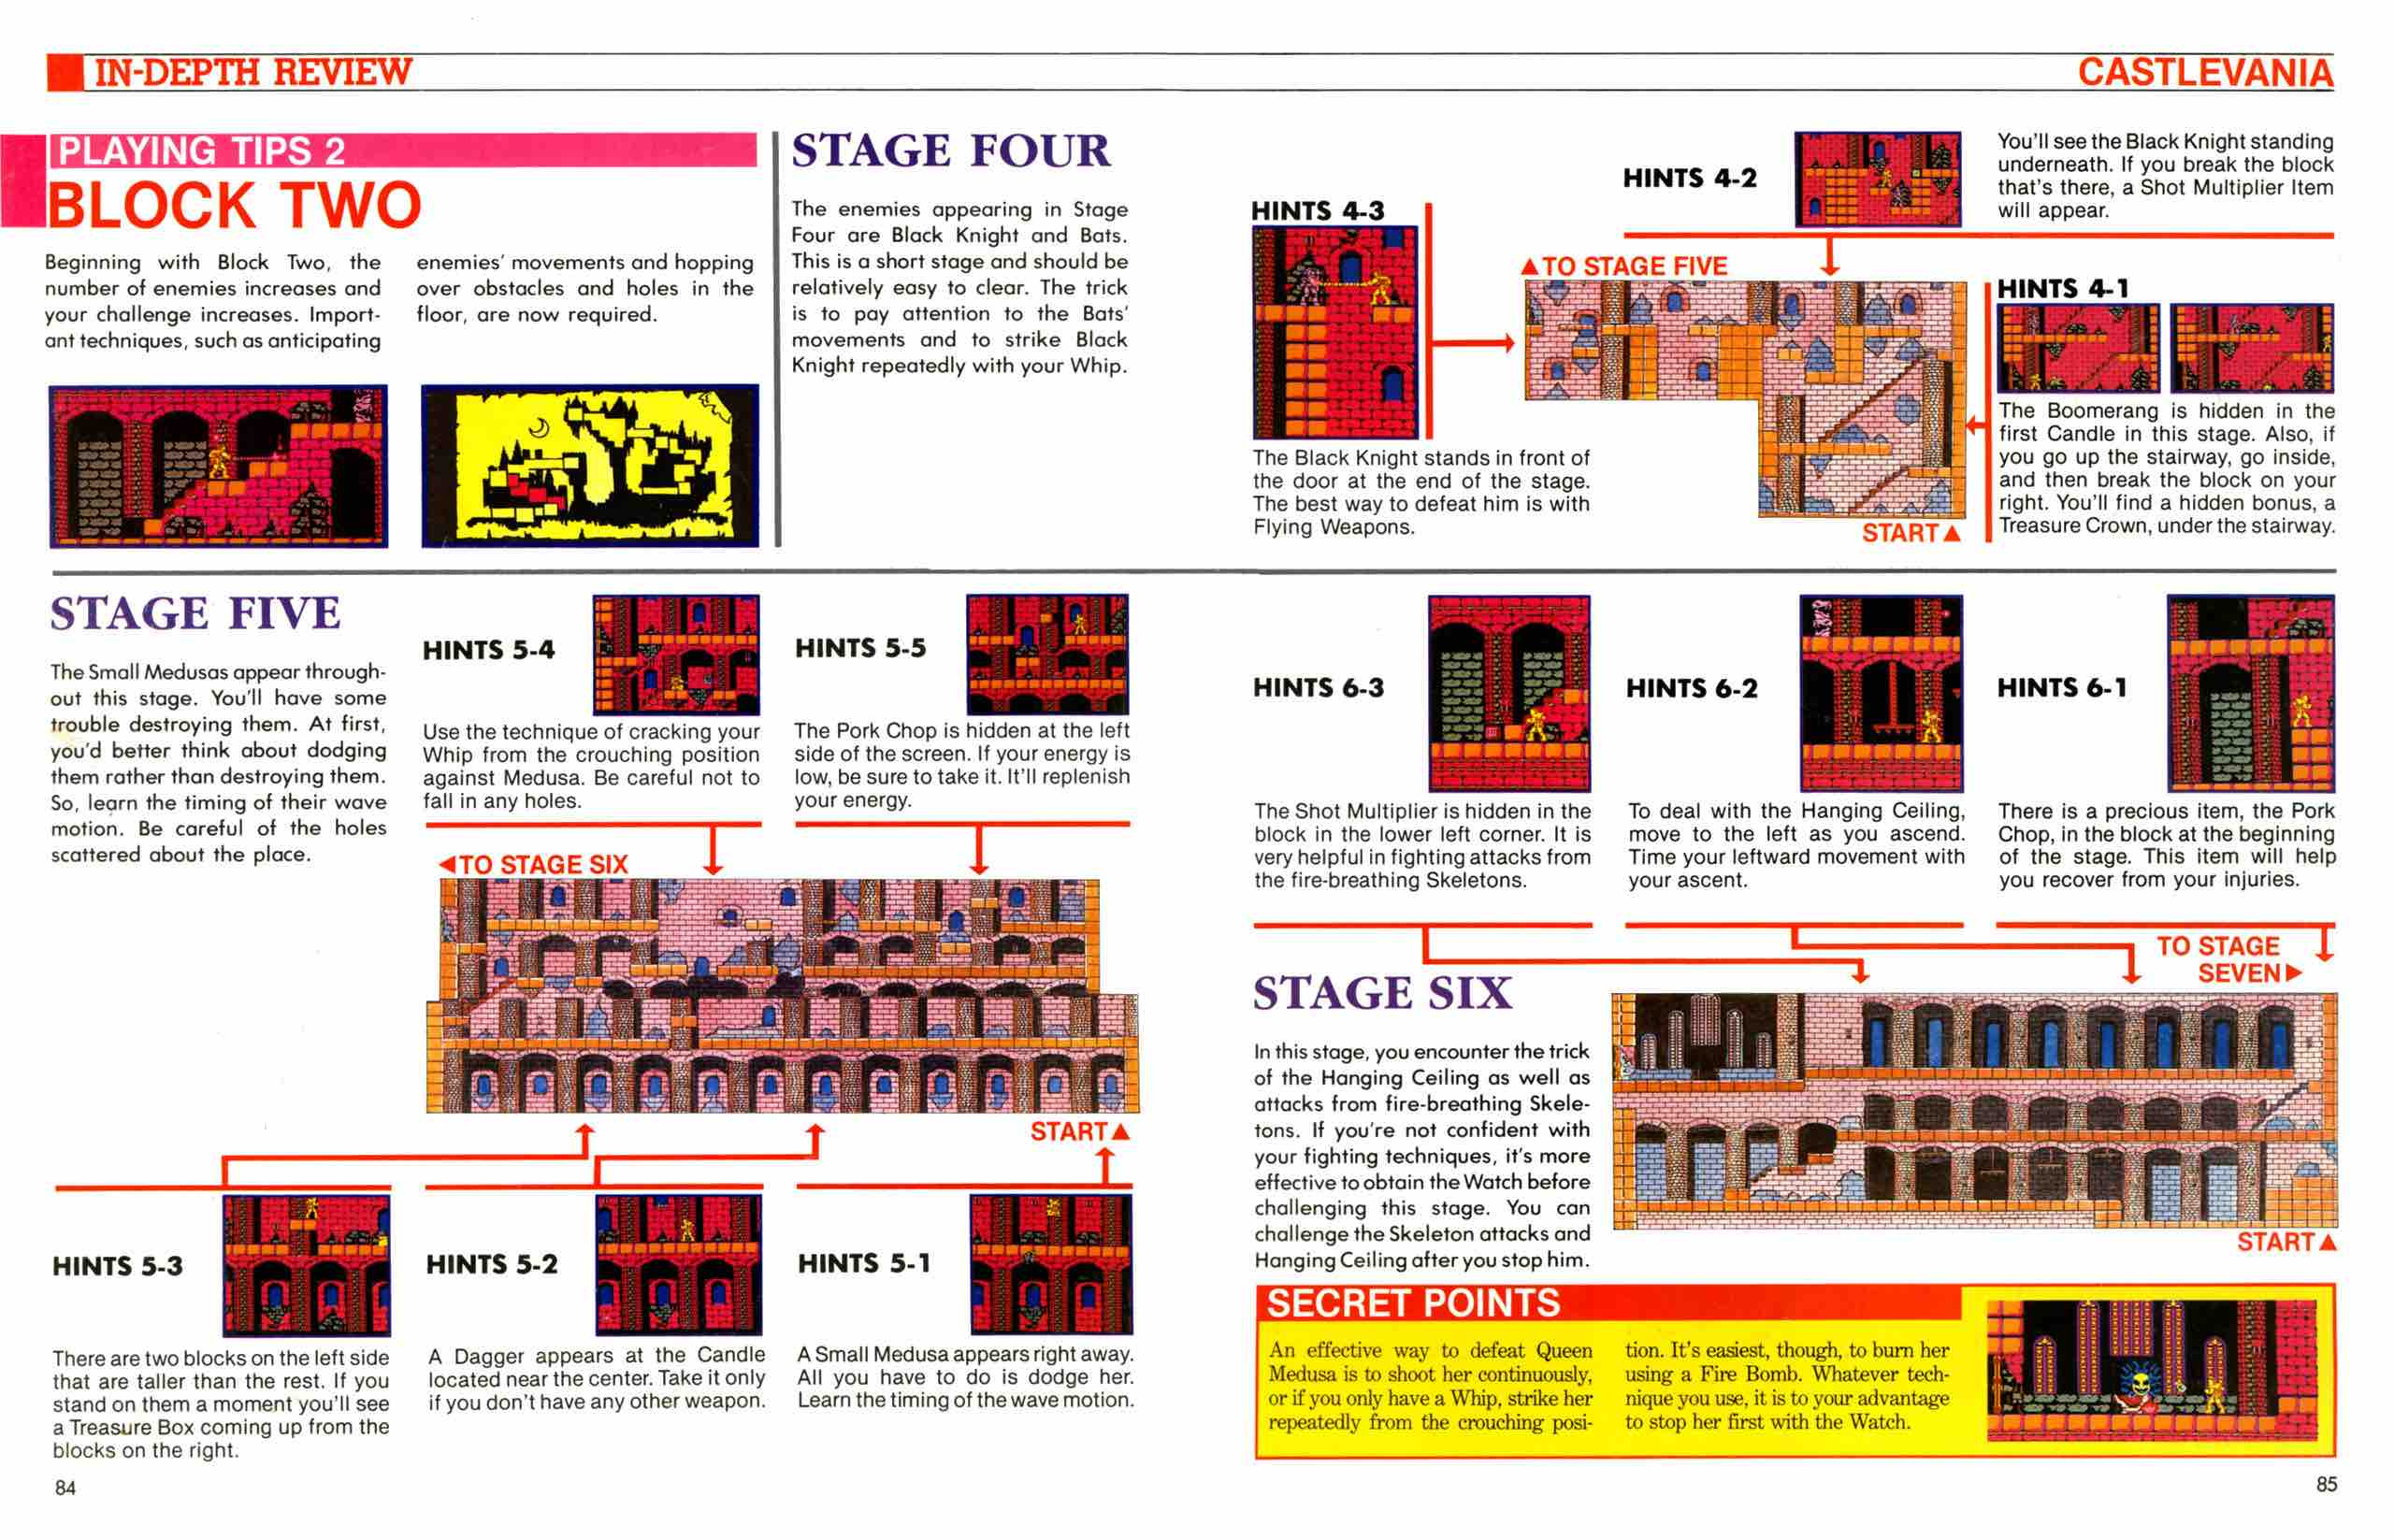 Official Nintendo Player's Guide Pg 84-85